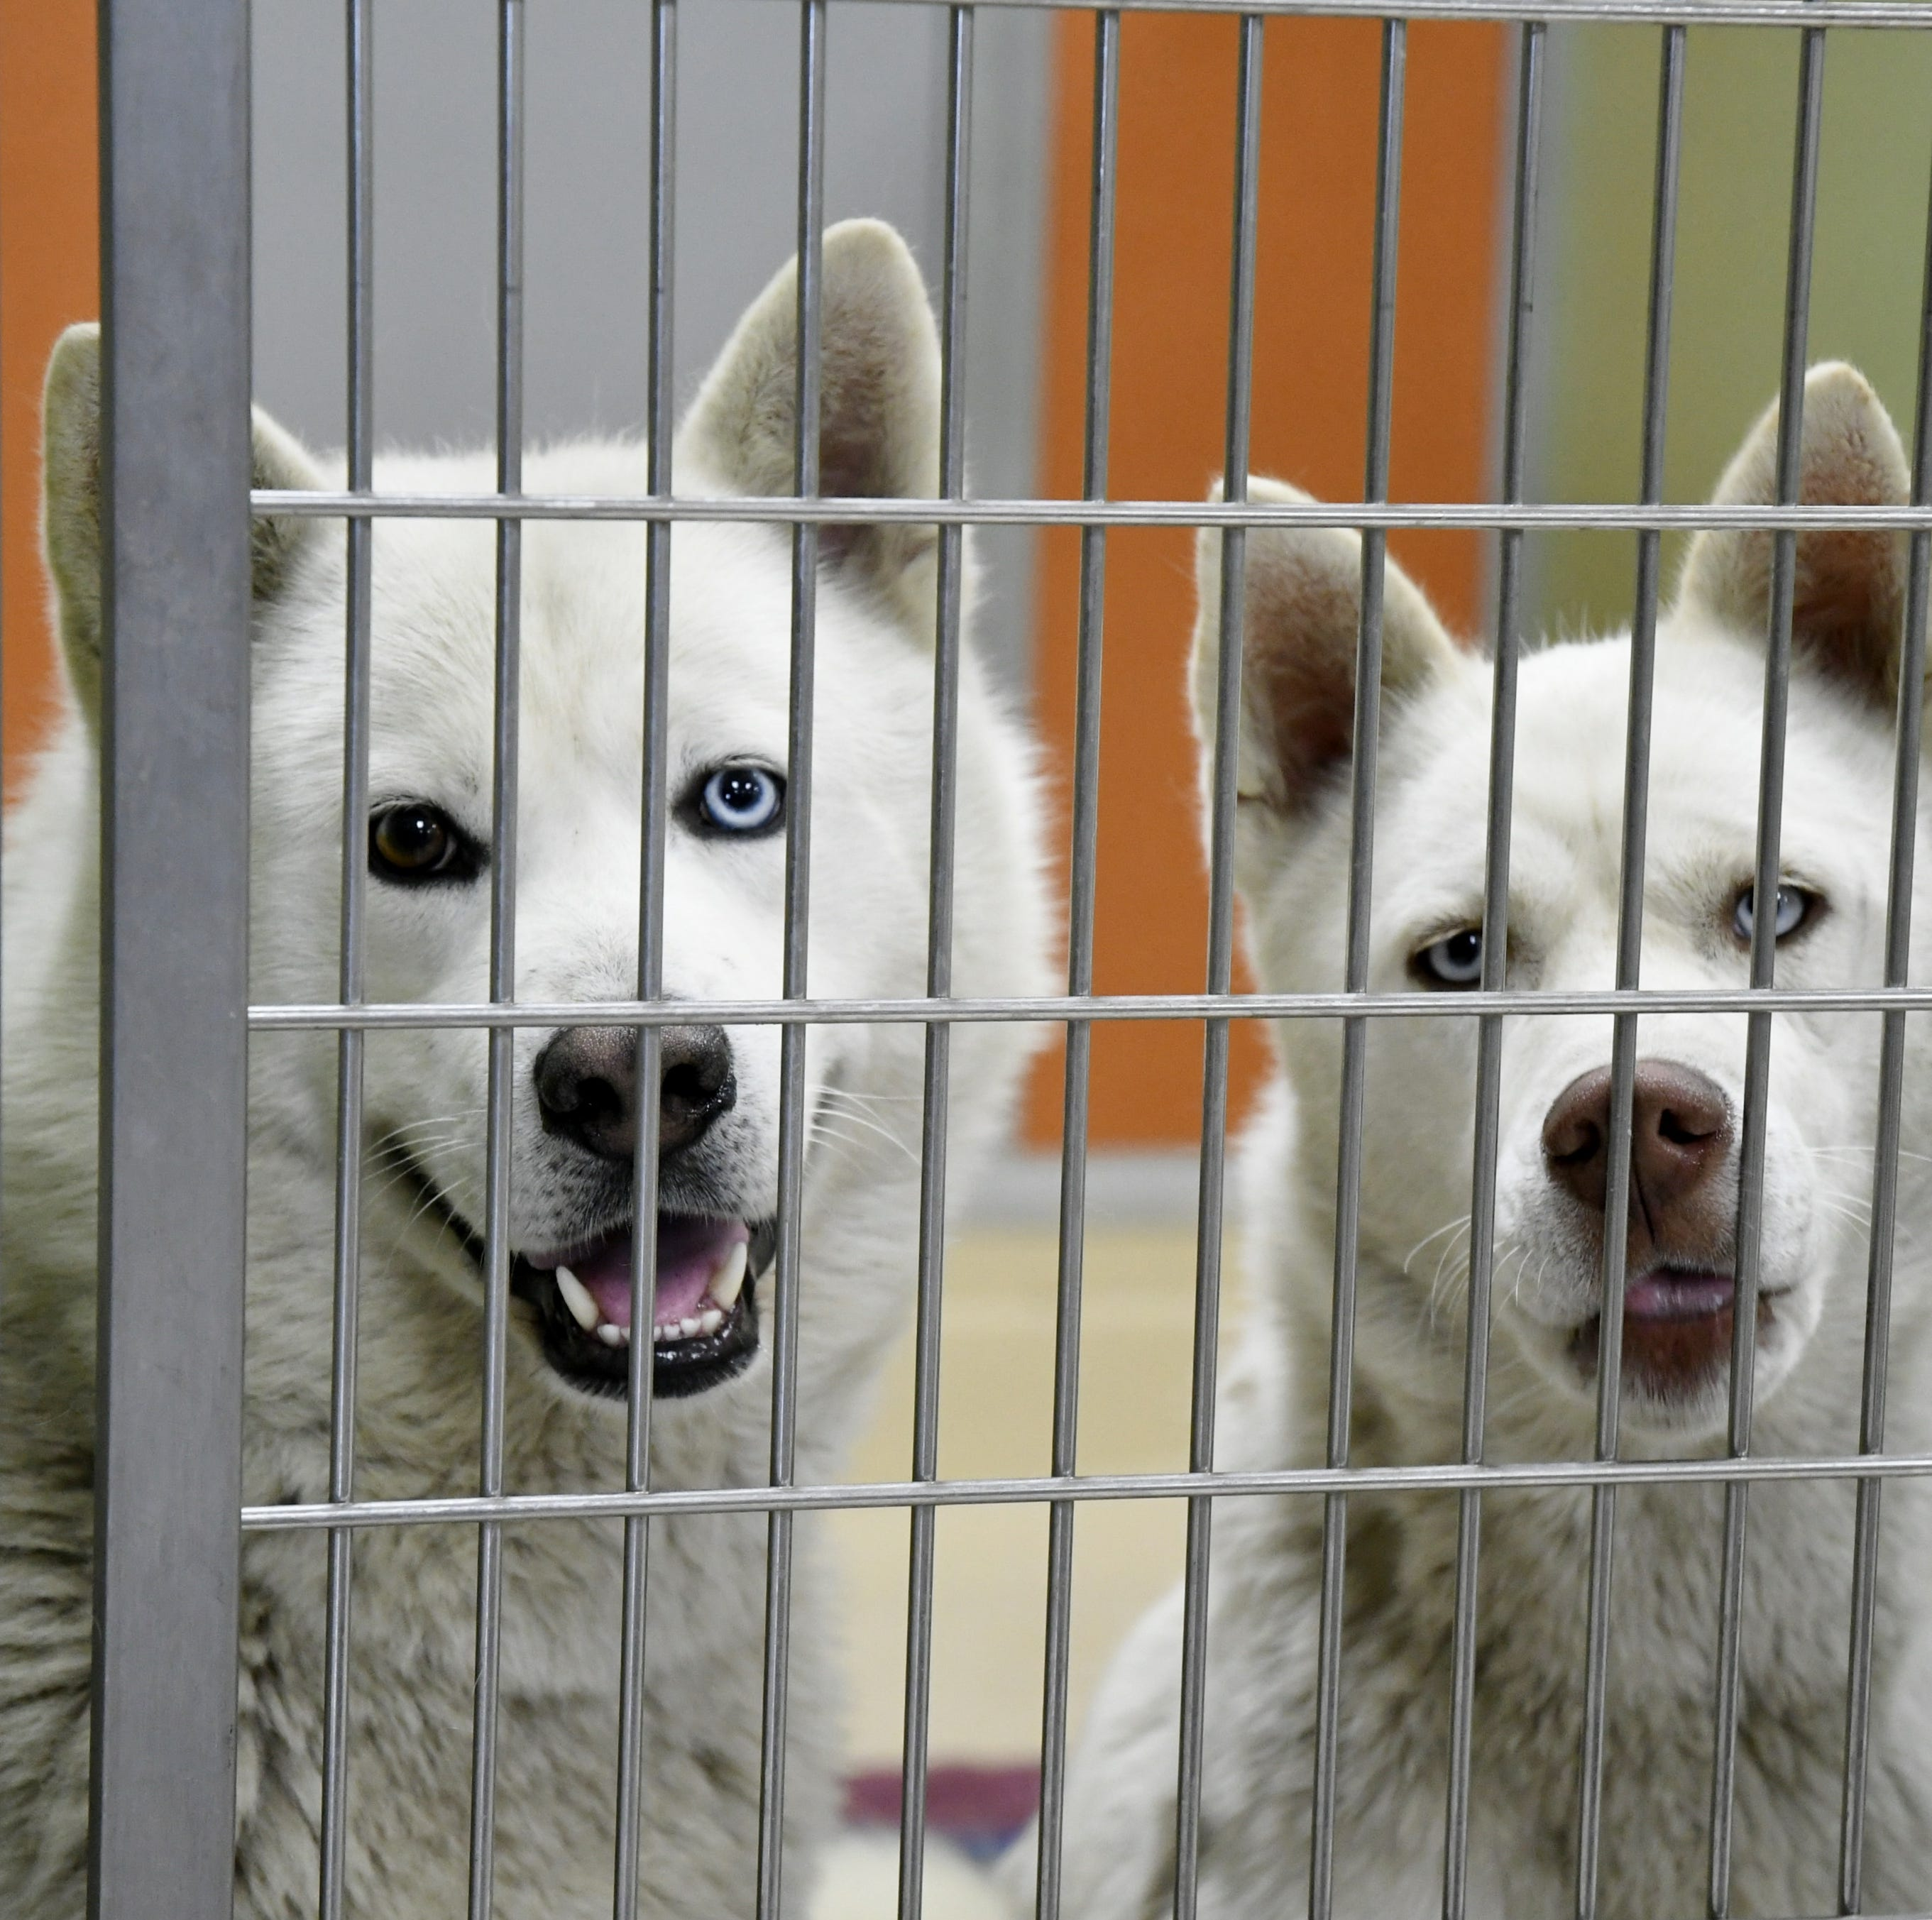 'Game of Thrones' blamed for spike in Valley huskies being abandoned